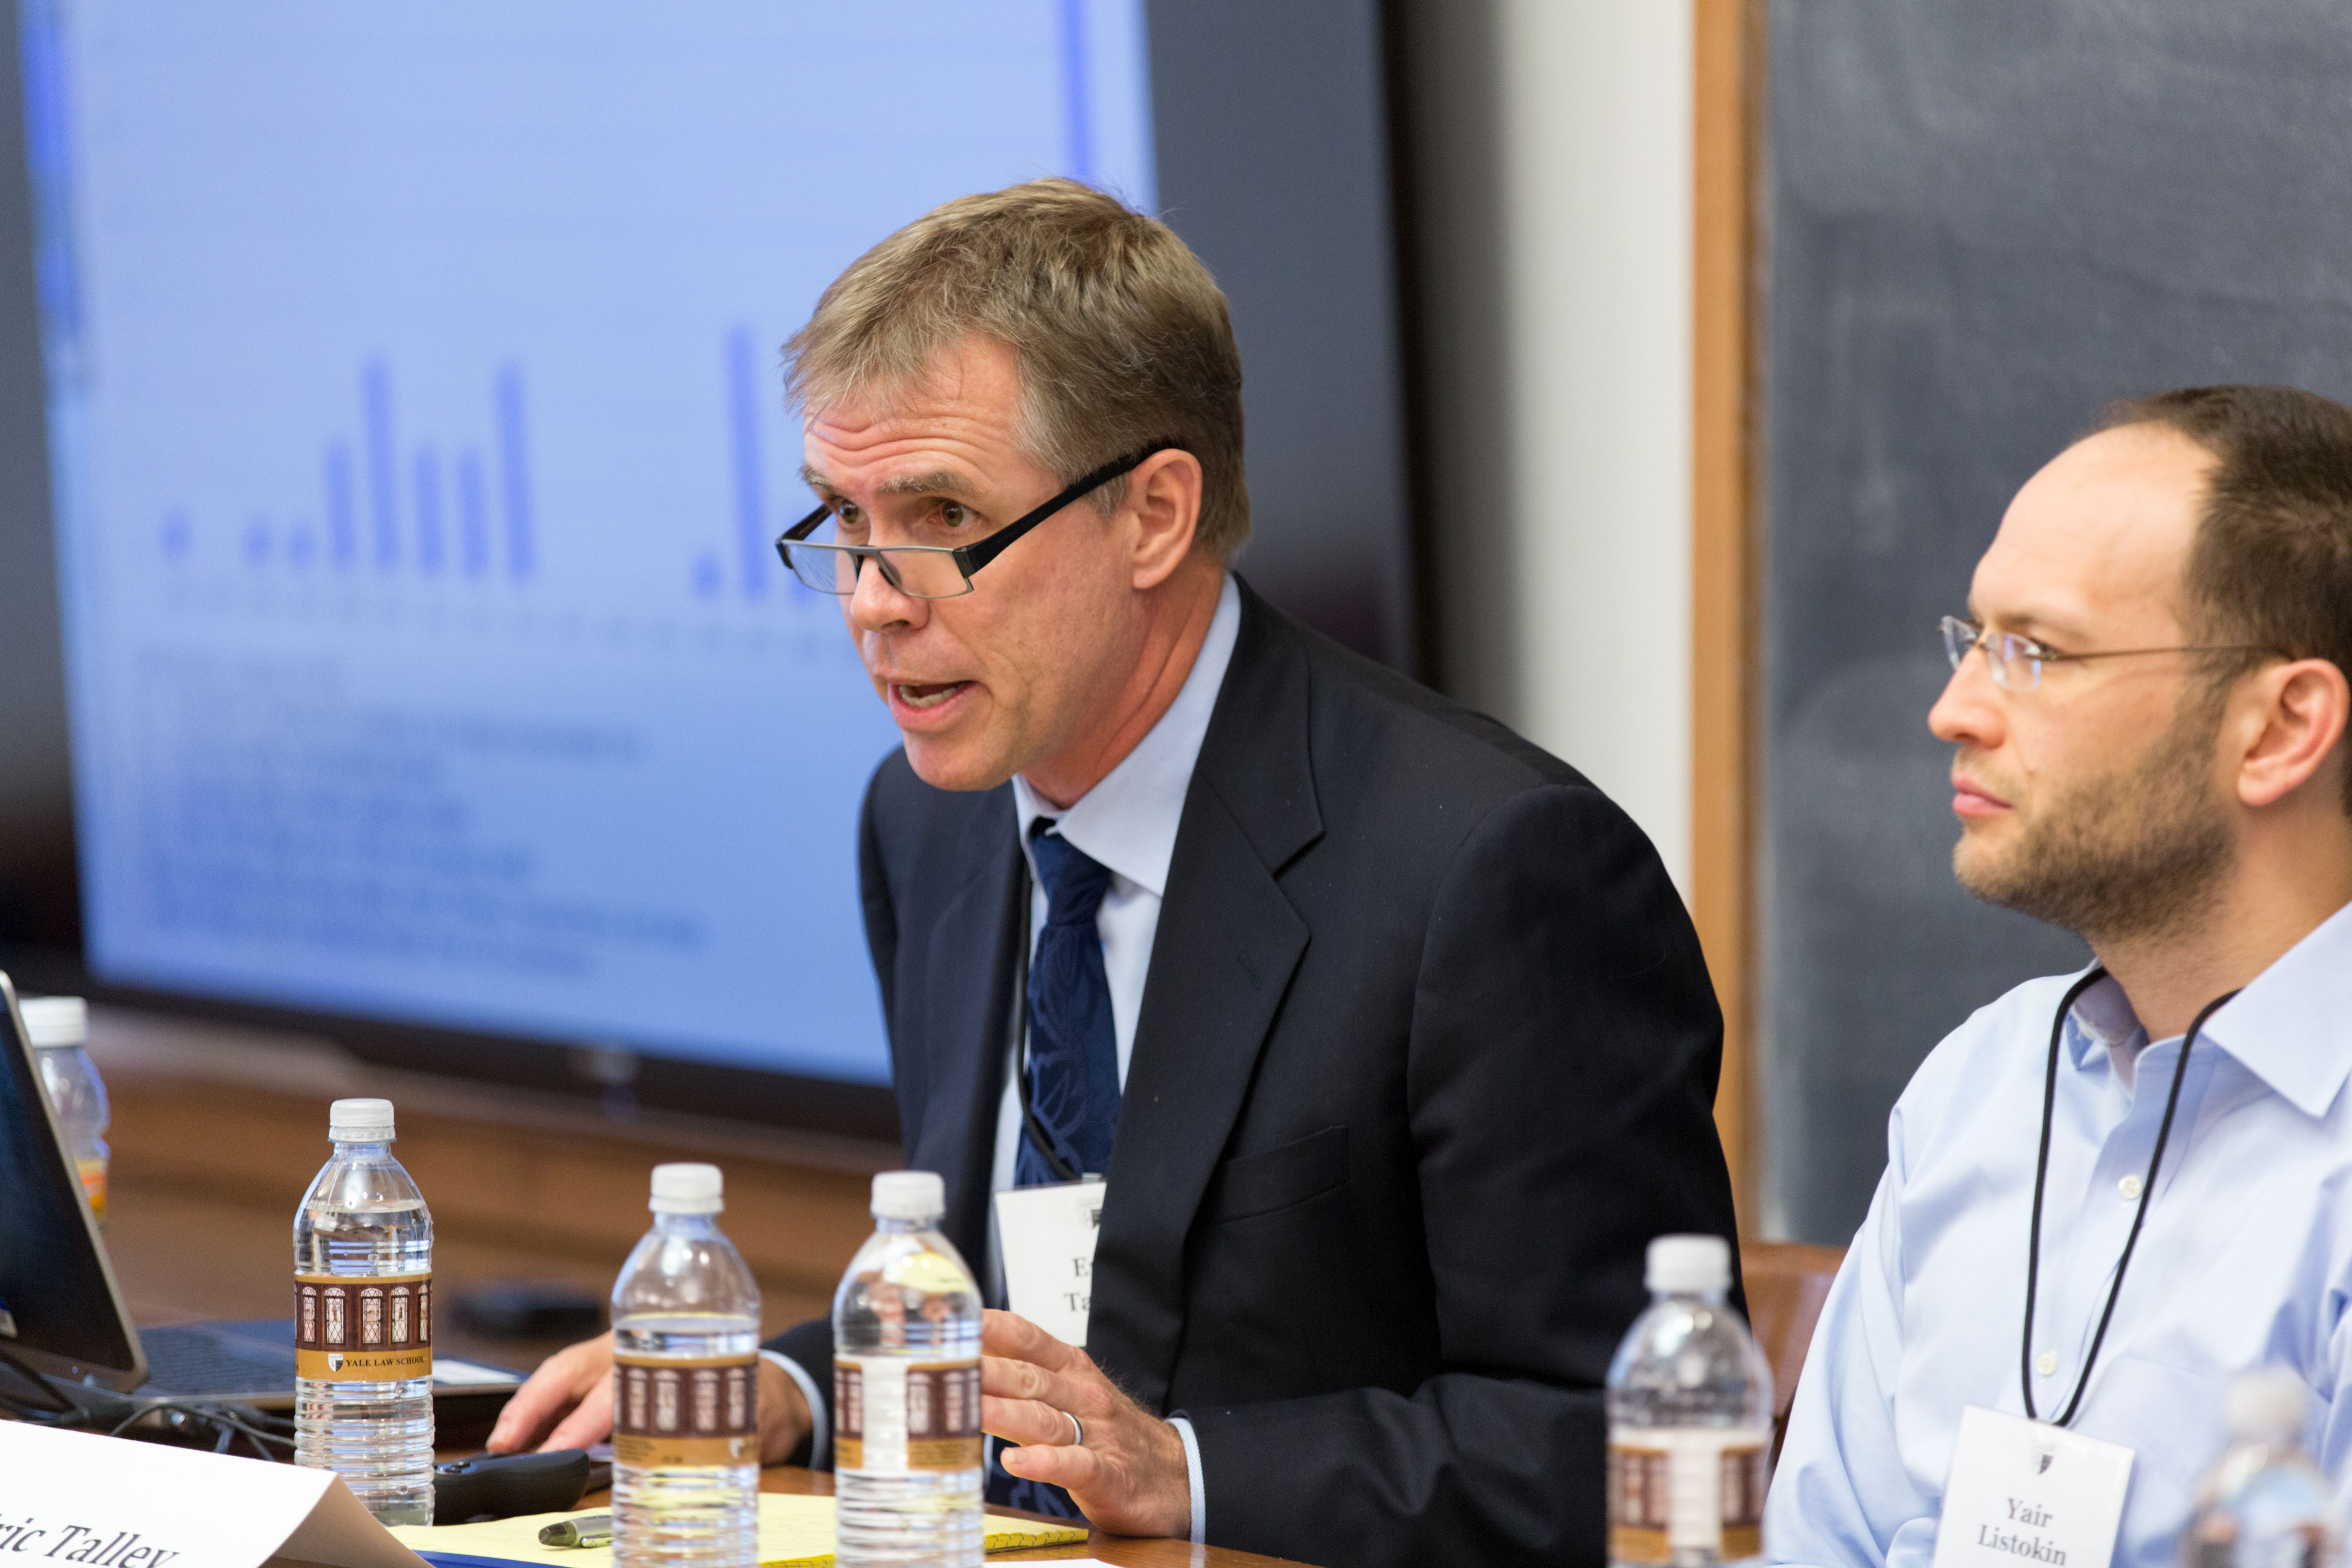 Berkeley Law Prof. Eric Talley and YLS Prof. Yair Listokin '06